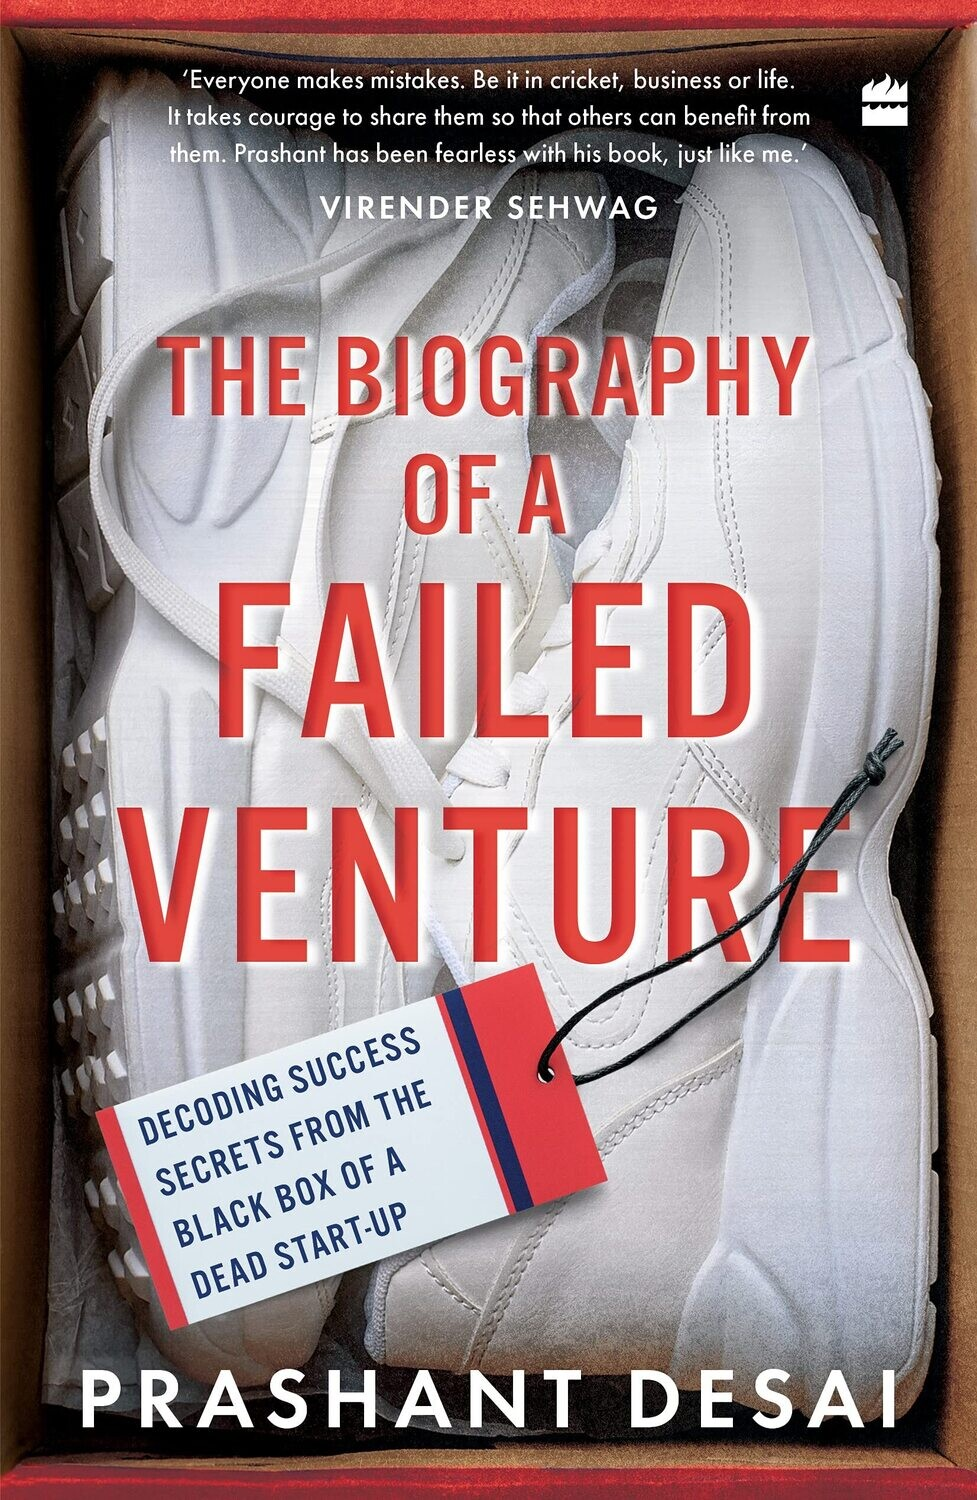 The Biography of a Failed Venture: Decoding Success Secrets from the Blackbox of a Dead Start-Up